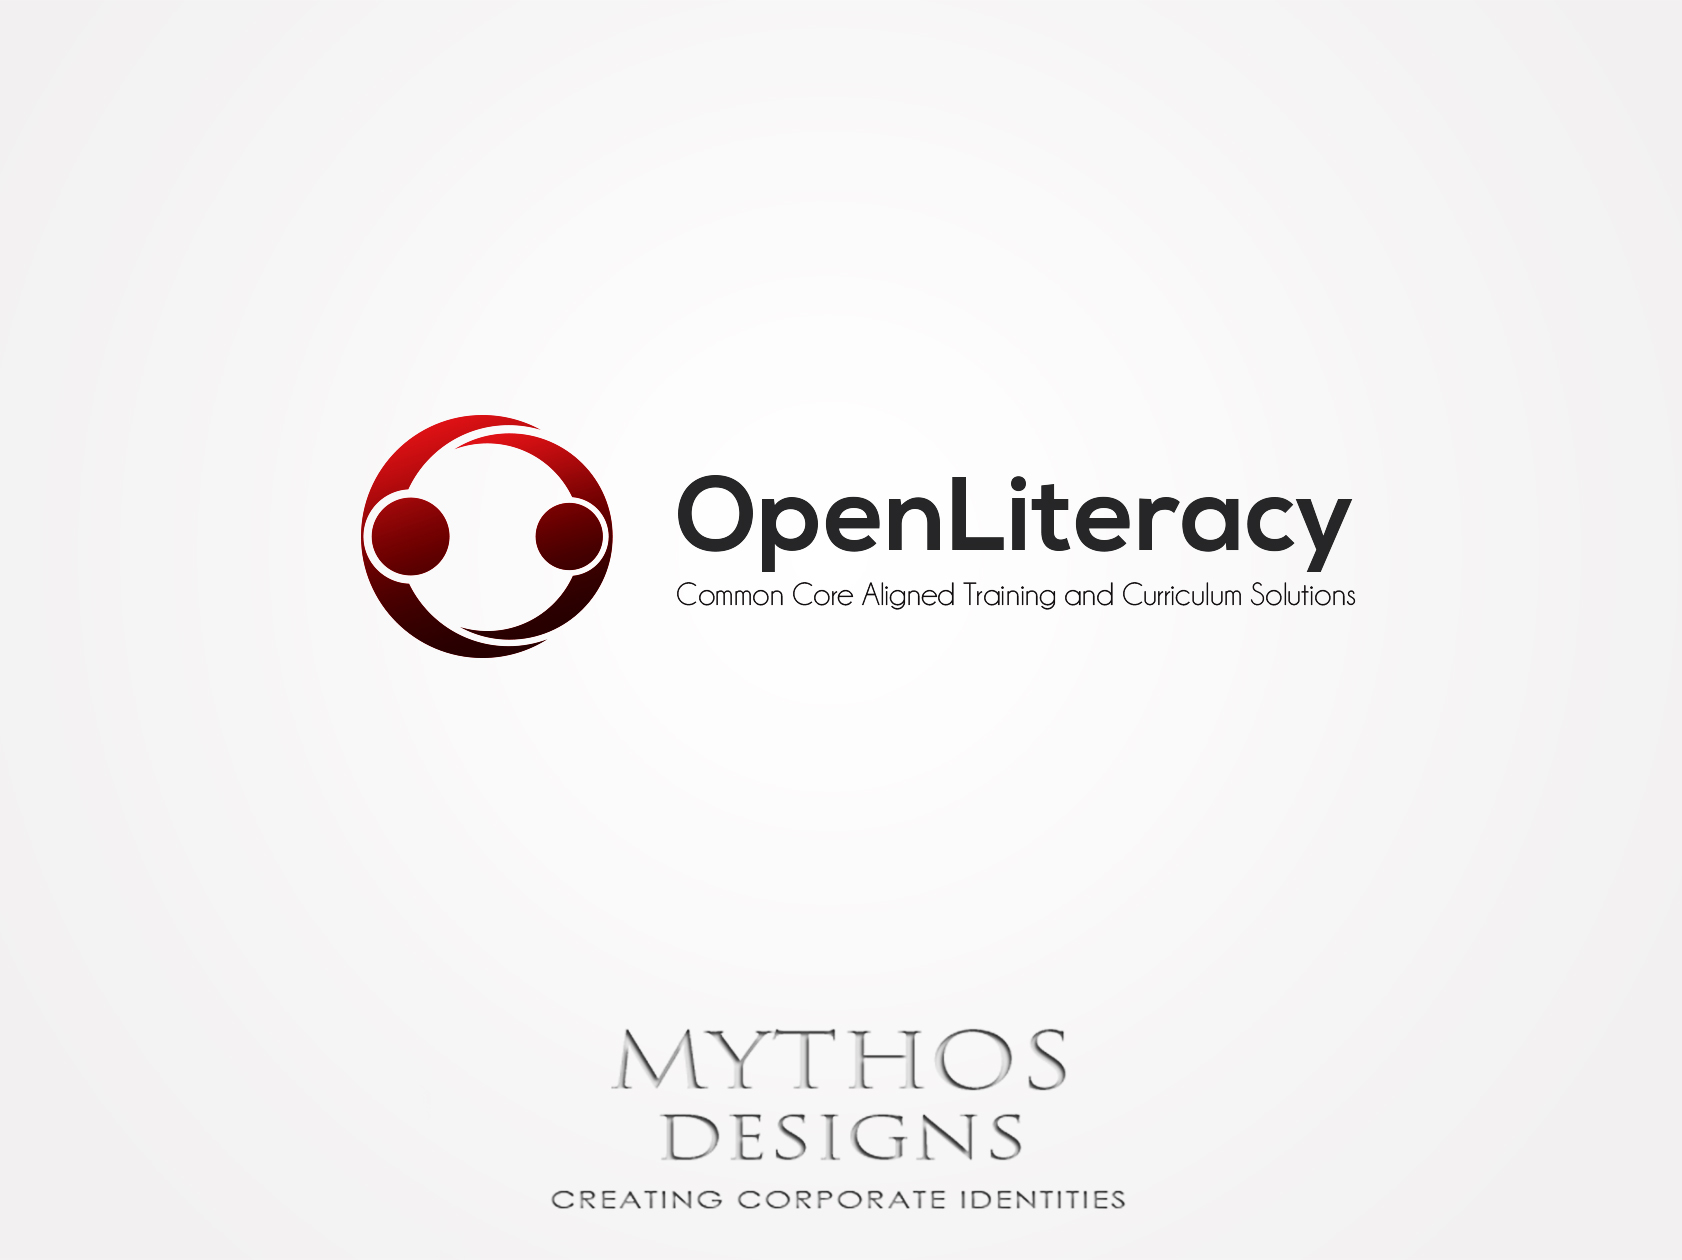 Logo Design by Mythos Designs - Entry No. 70 in the Logo Design Contest Inspiring Logo Design for OpenLiteracy.